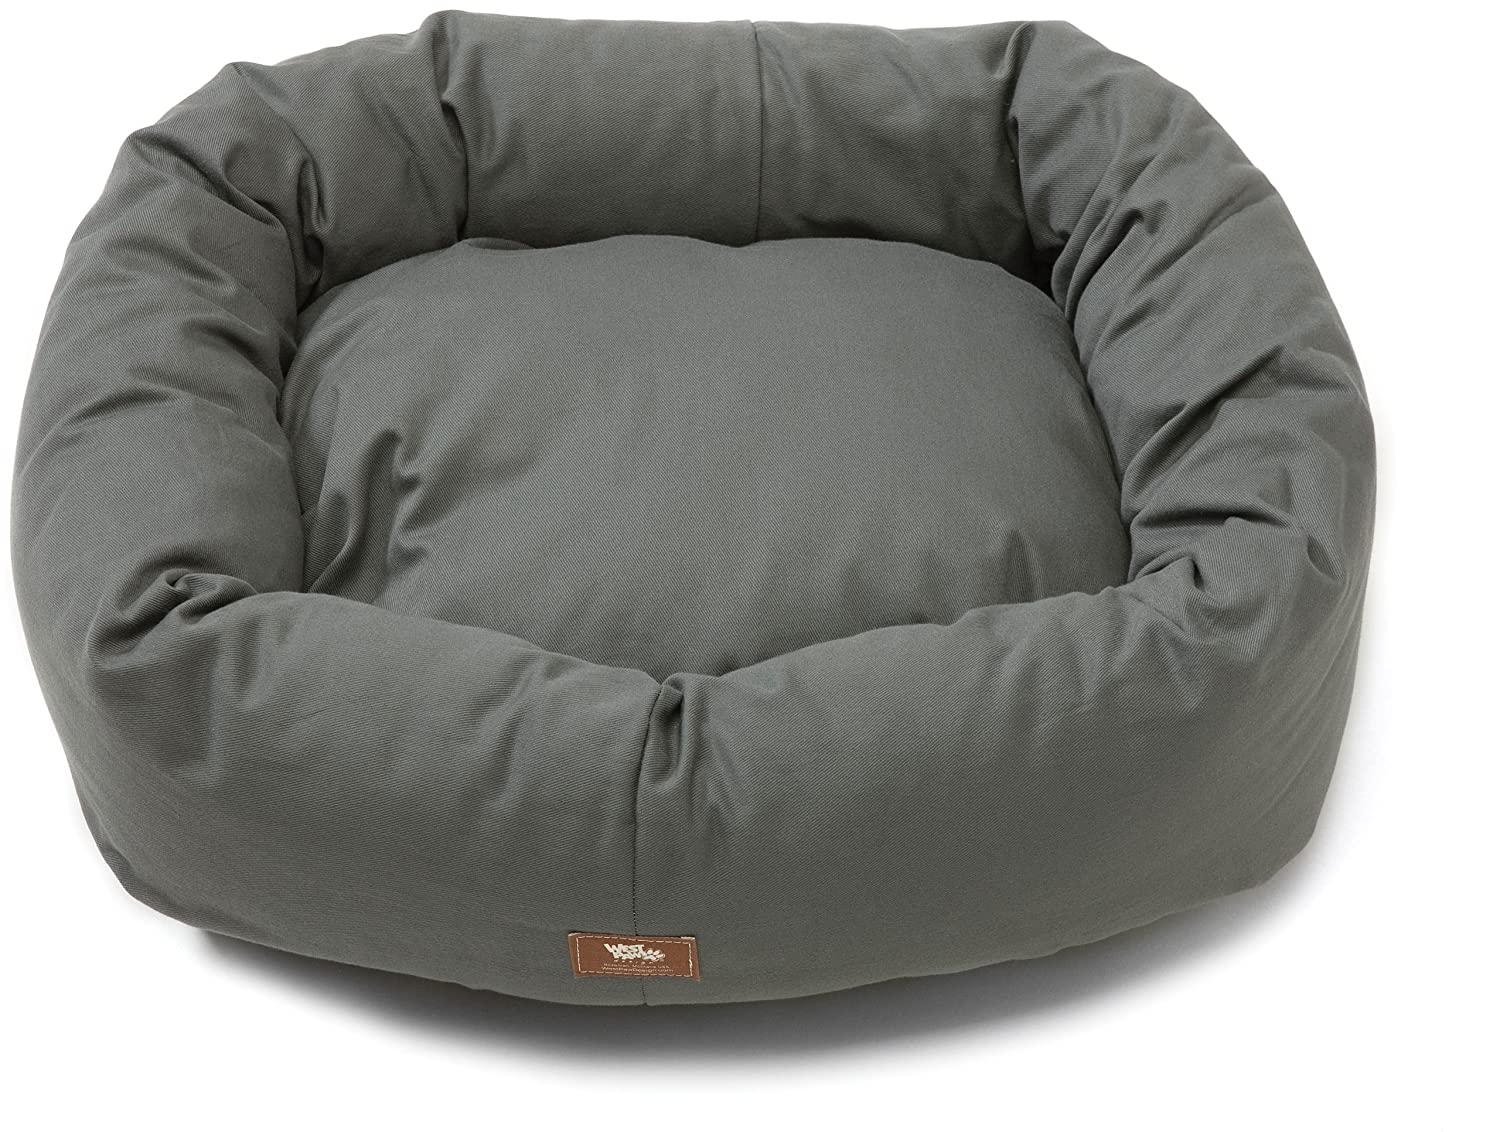 West Paw Design Bumper Bed Stuffed Dog Bed